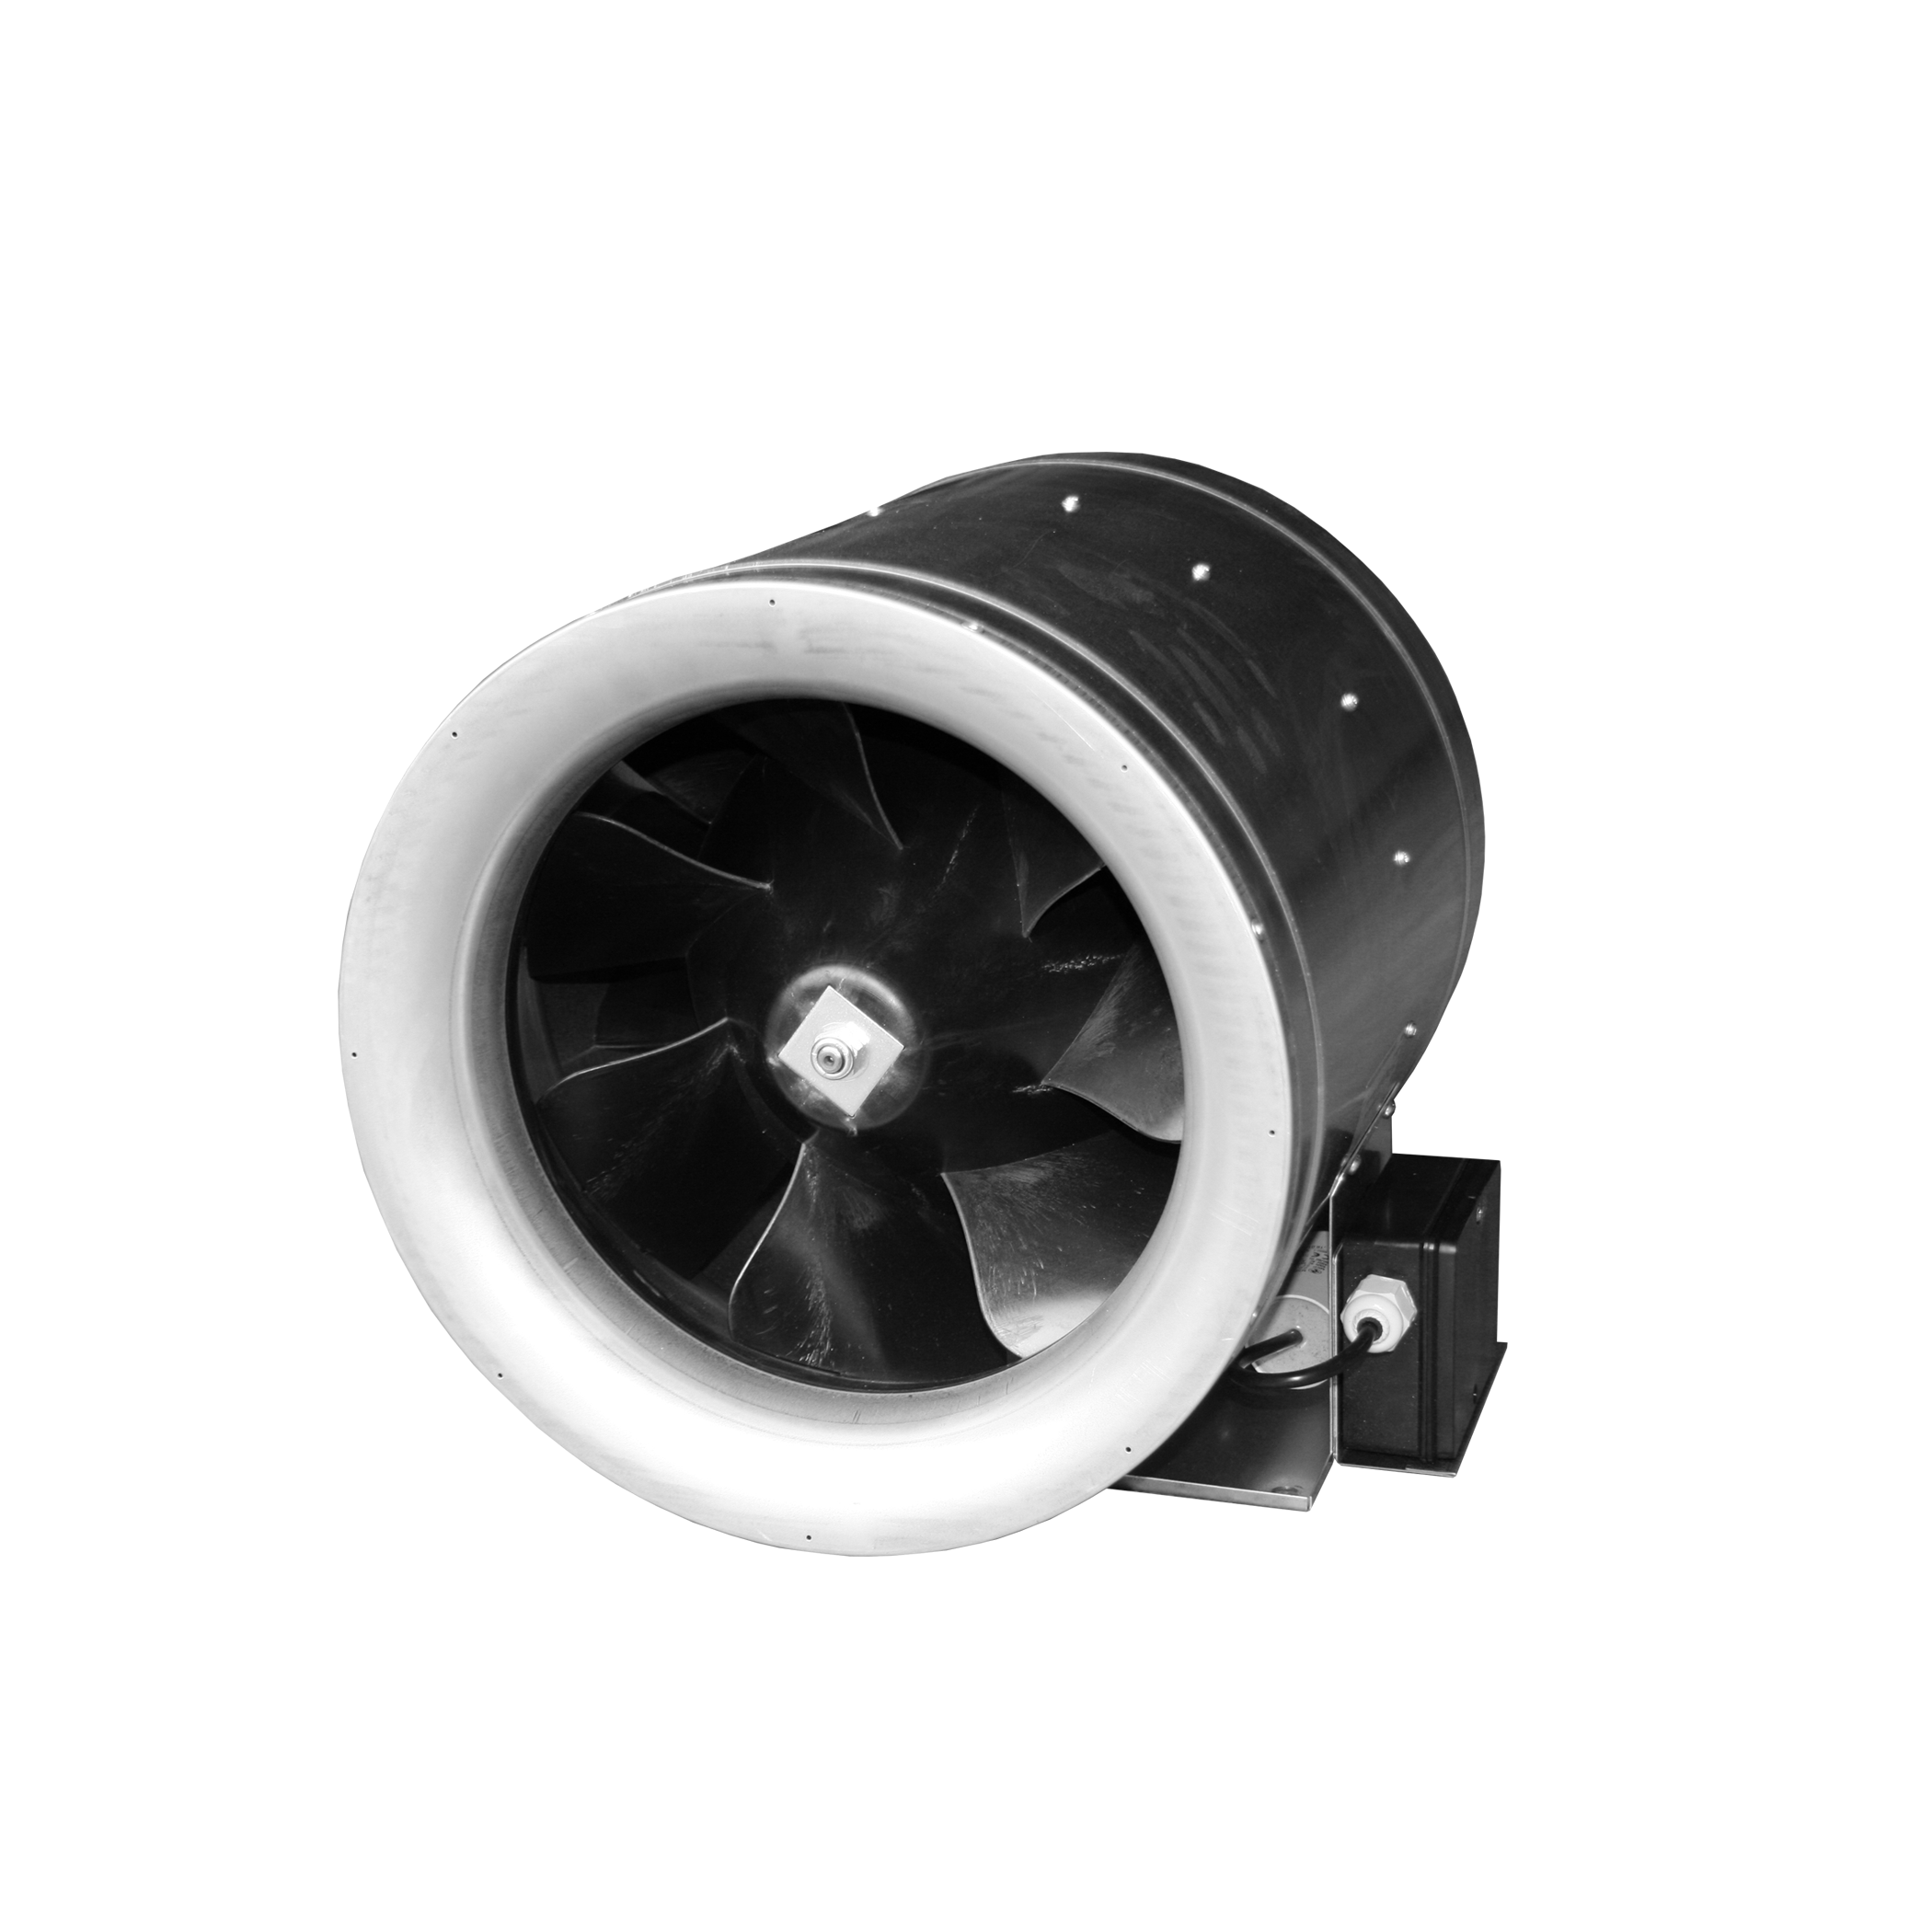 Energy Saving Fans, Industrial Fans: Design, Manufacture & Supply | Moduflow Fan Systems